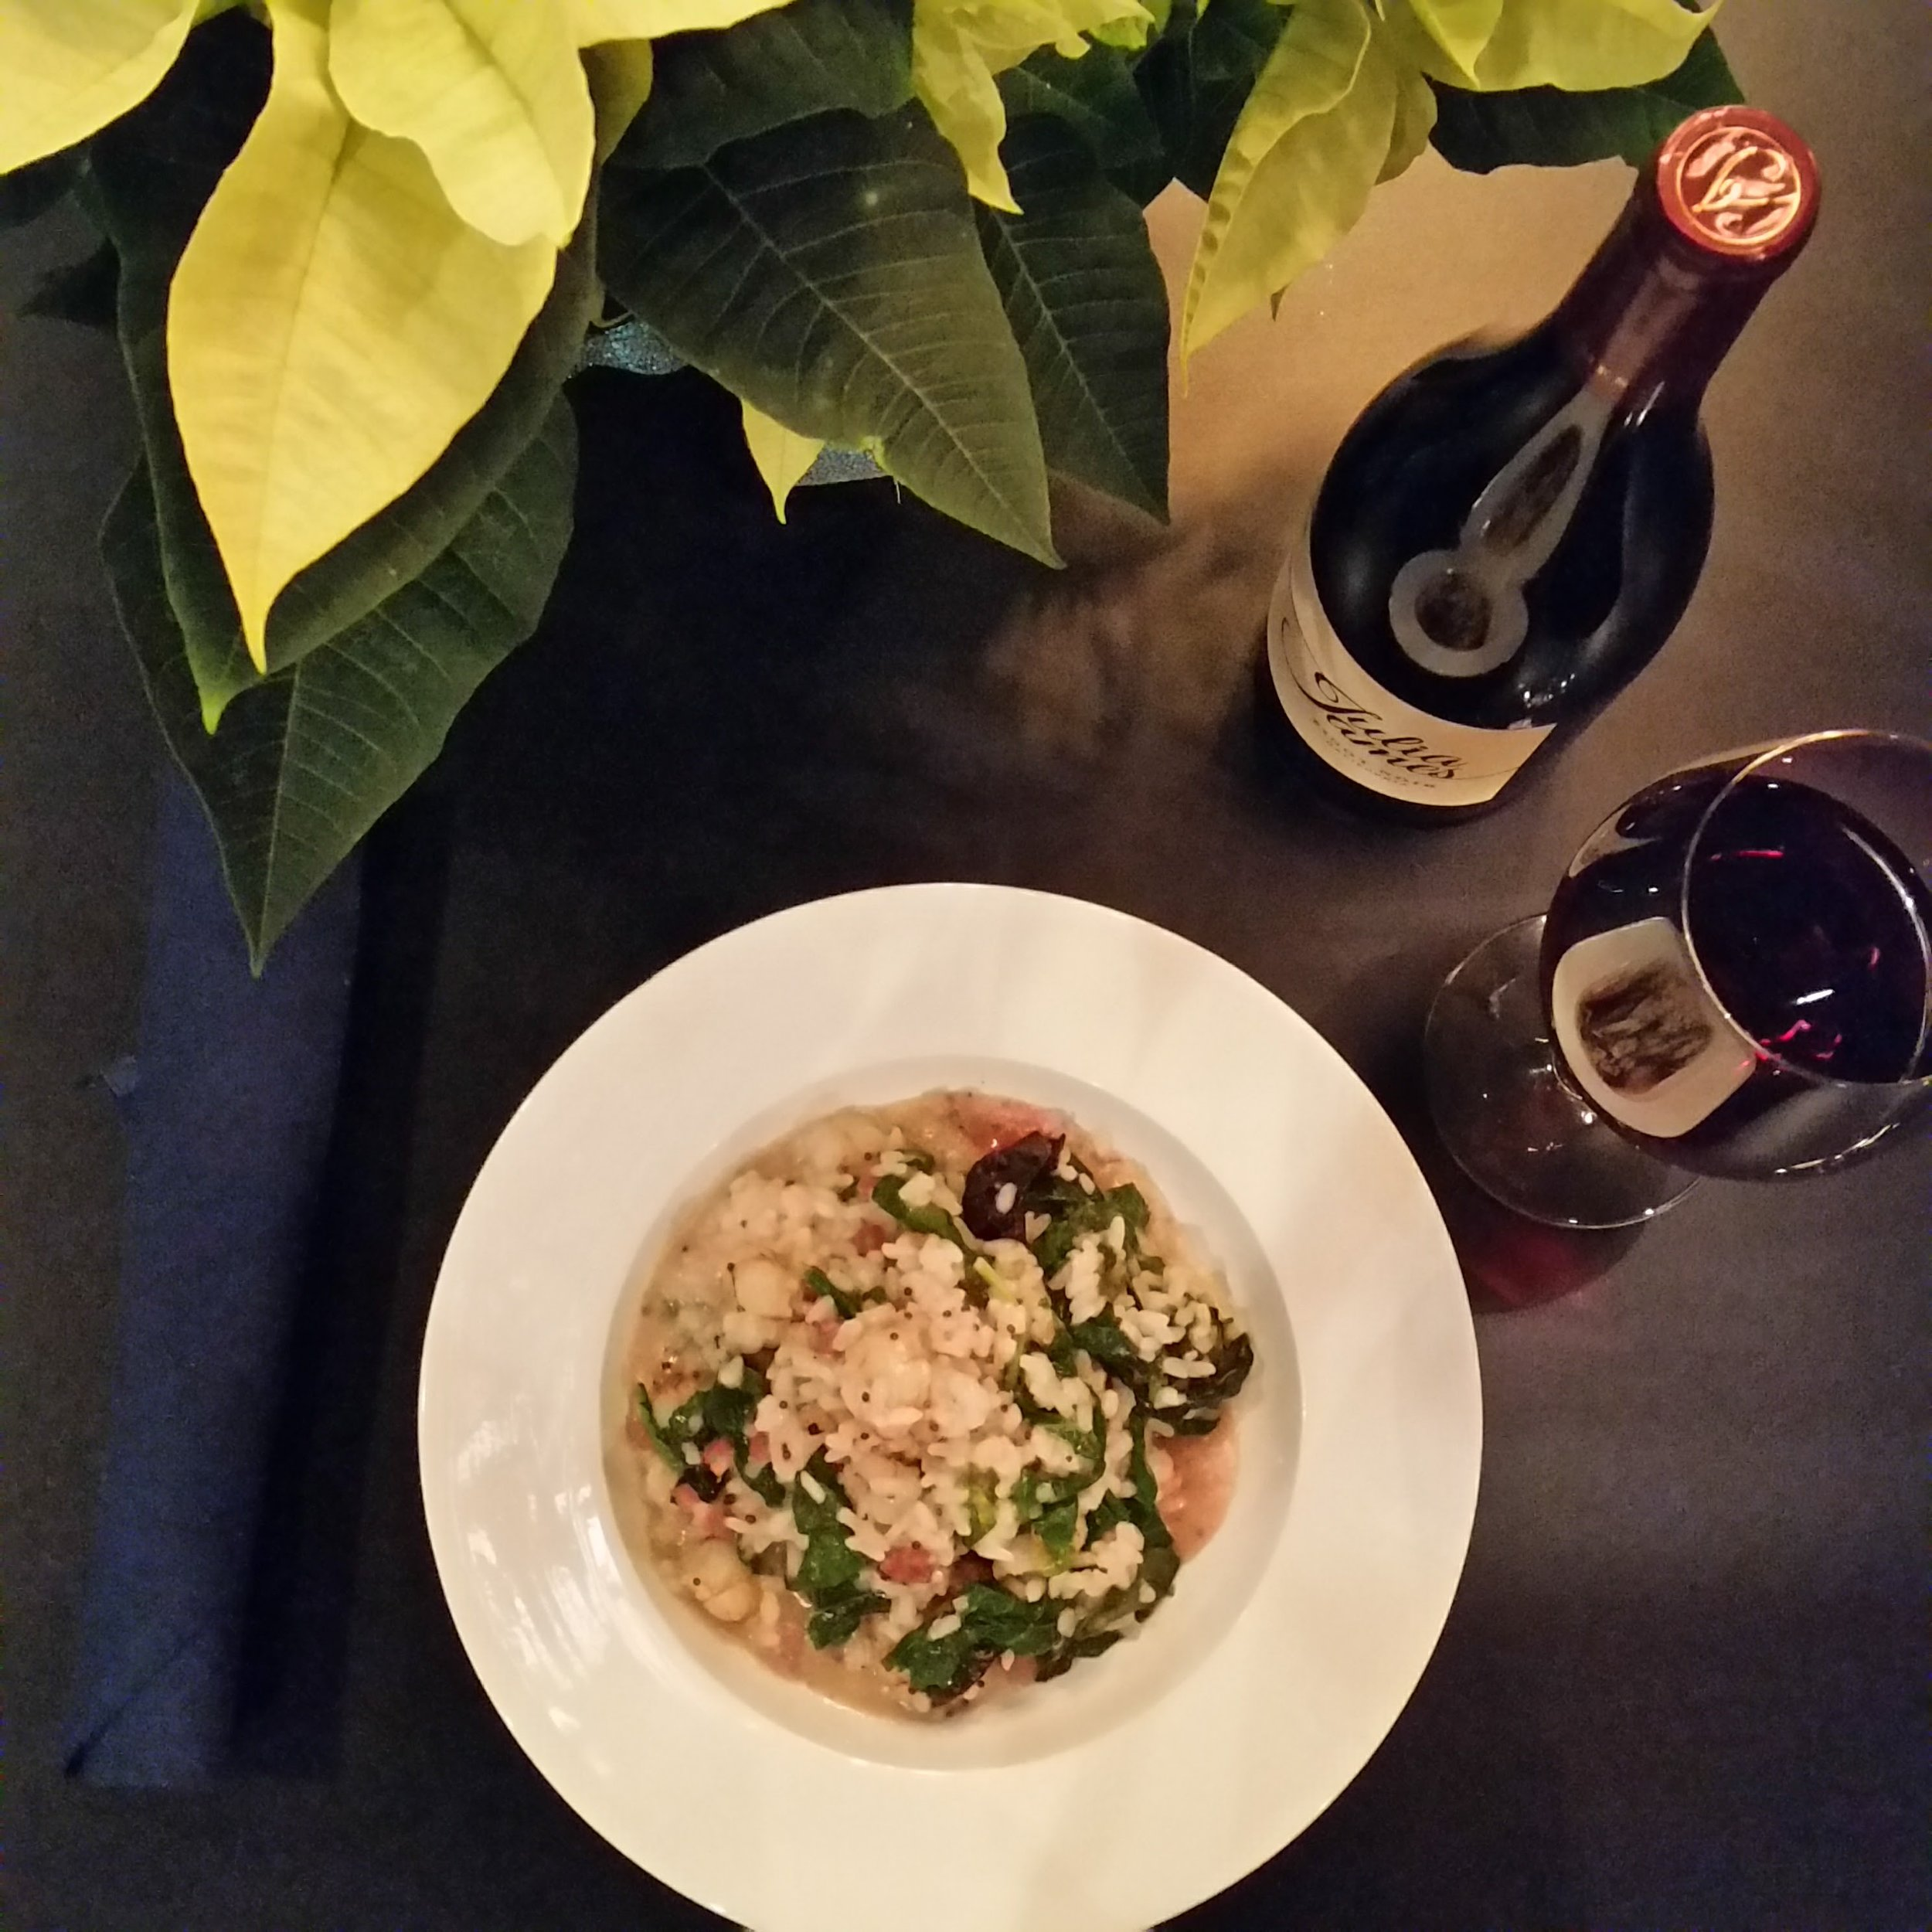 risotto and wine.jpg